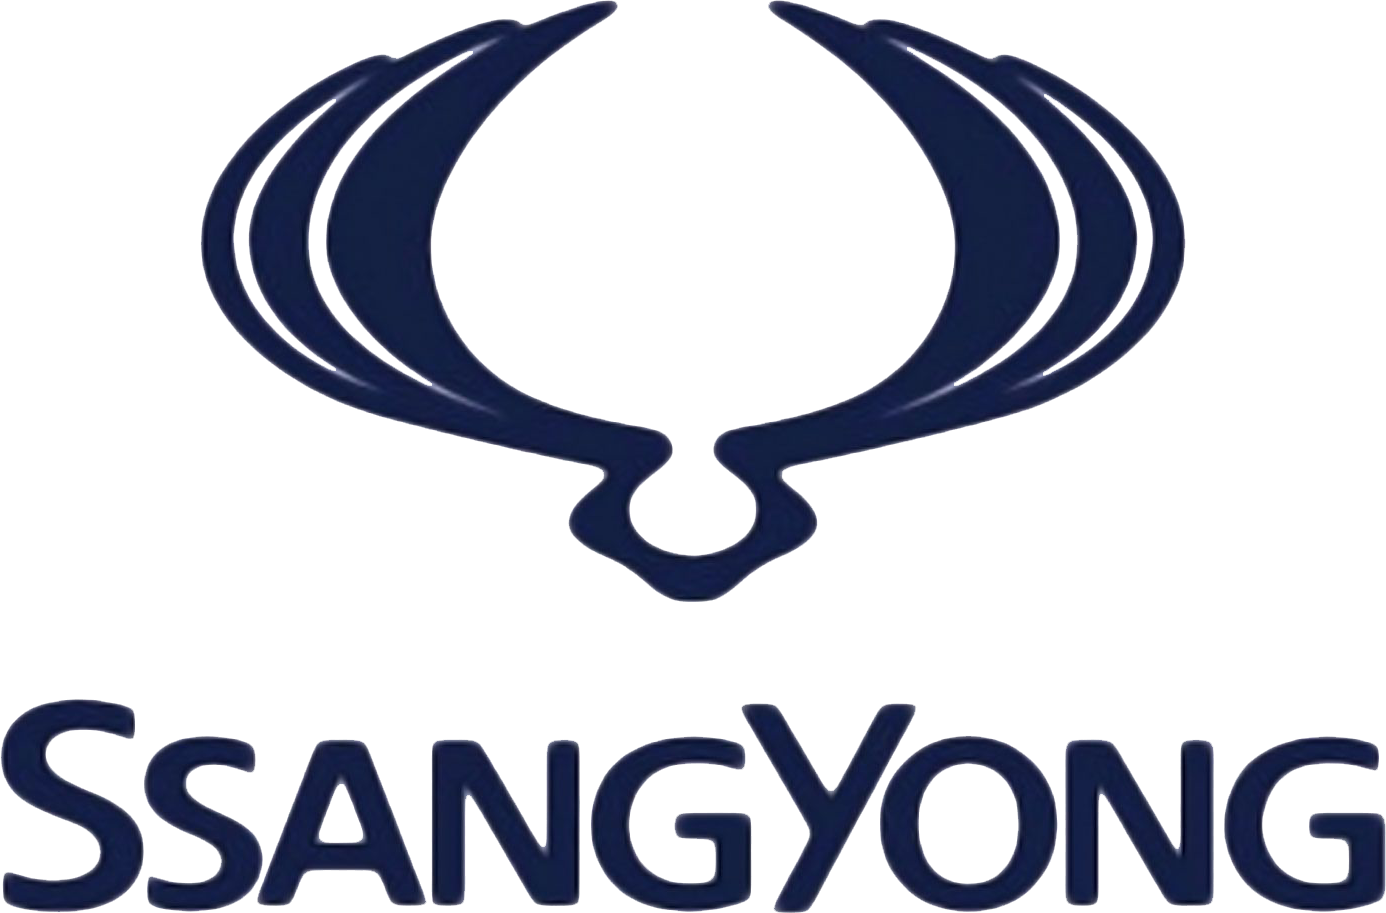 UEACO – Ssangyong